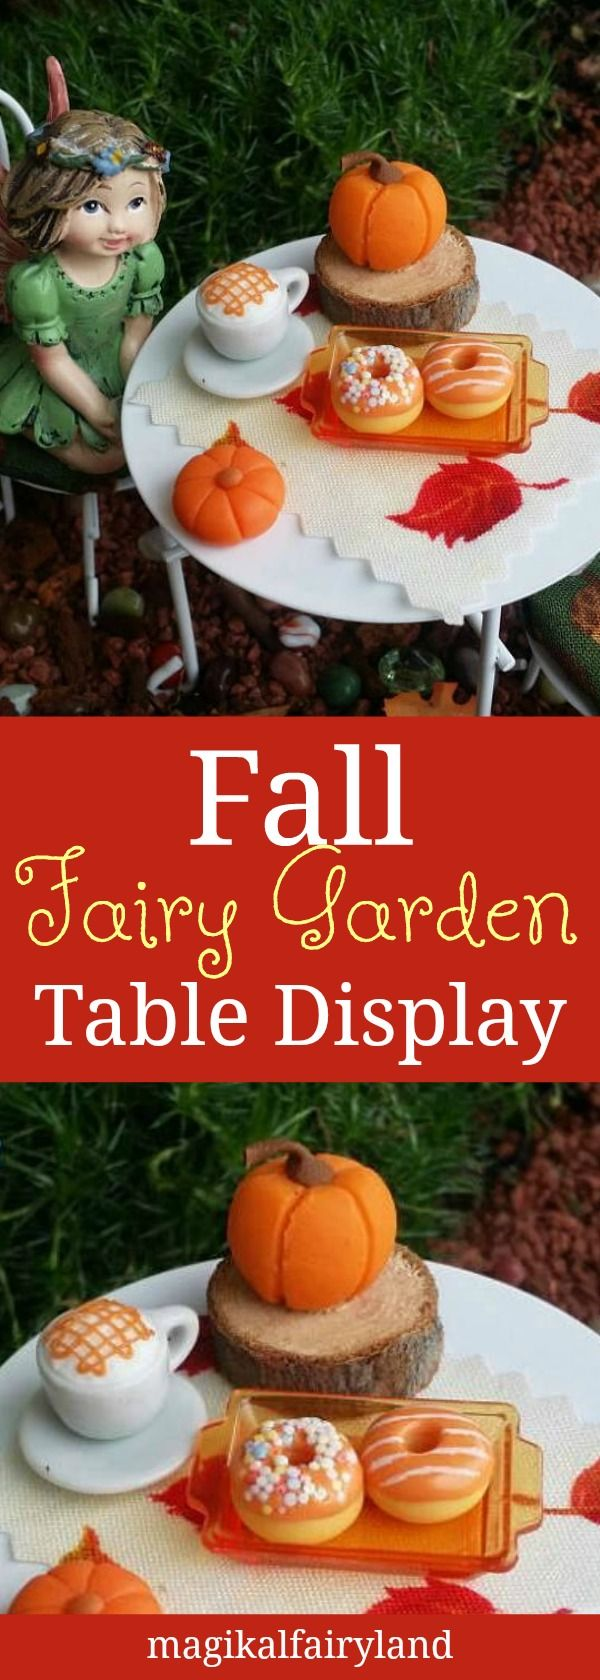 I LOVE fairy gardens!! This would make a great gift for fairy garden lovers (and me.) Miss Fairy is enjoying some fall treats early this season!! With caramel macchiato, some Fall pumpkin spice Donuts. This is a one-of-a-kind scene. Fairy garden table display, miniature #Sponsored